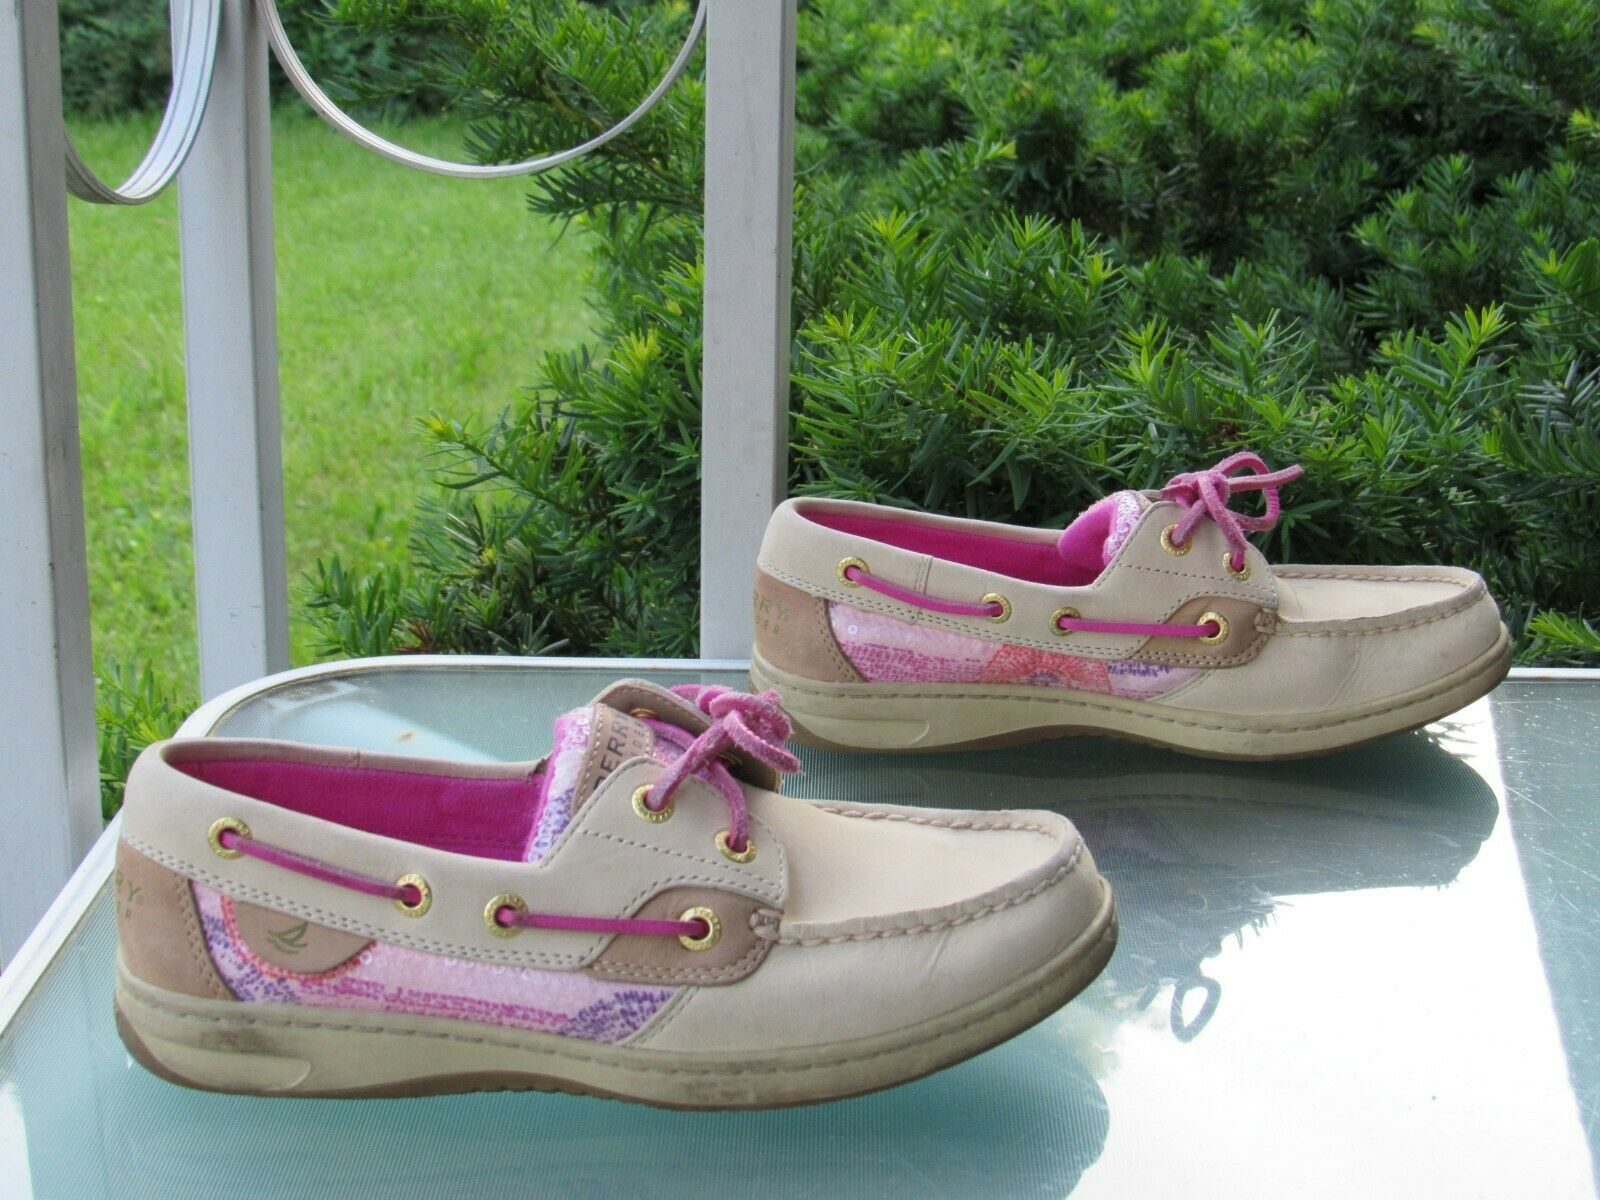 SPERRY Top-Sider Womens size 5.5 Beige Leather Boat Loafers Comfort Shoes